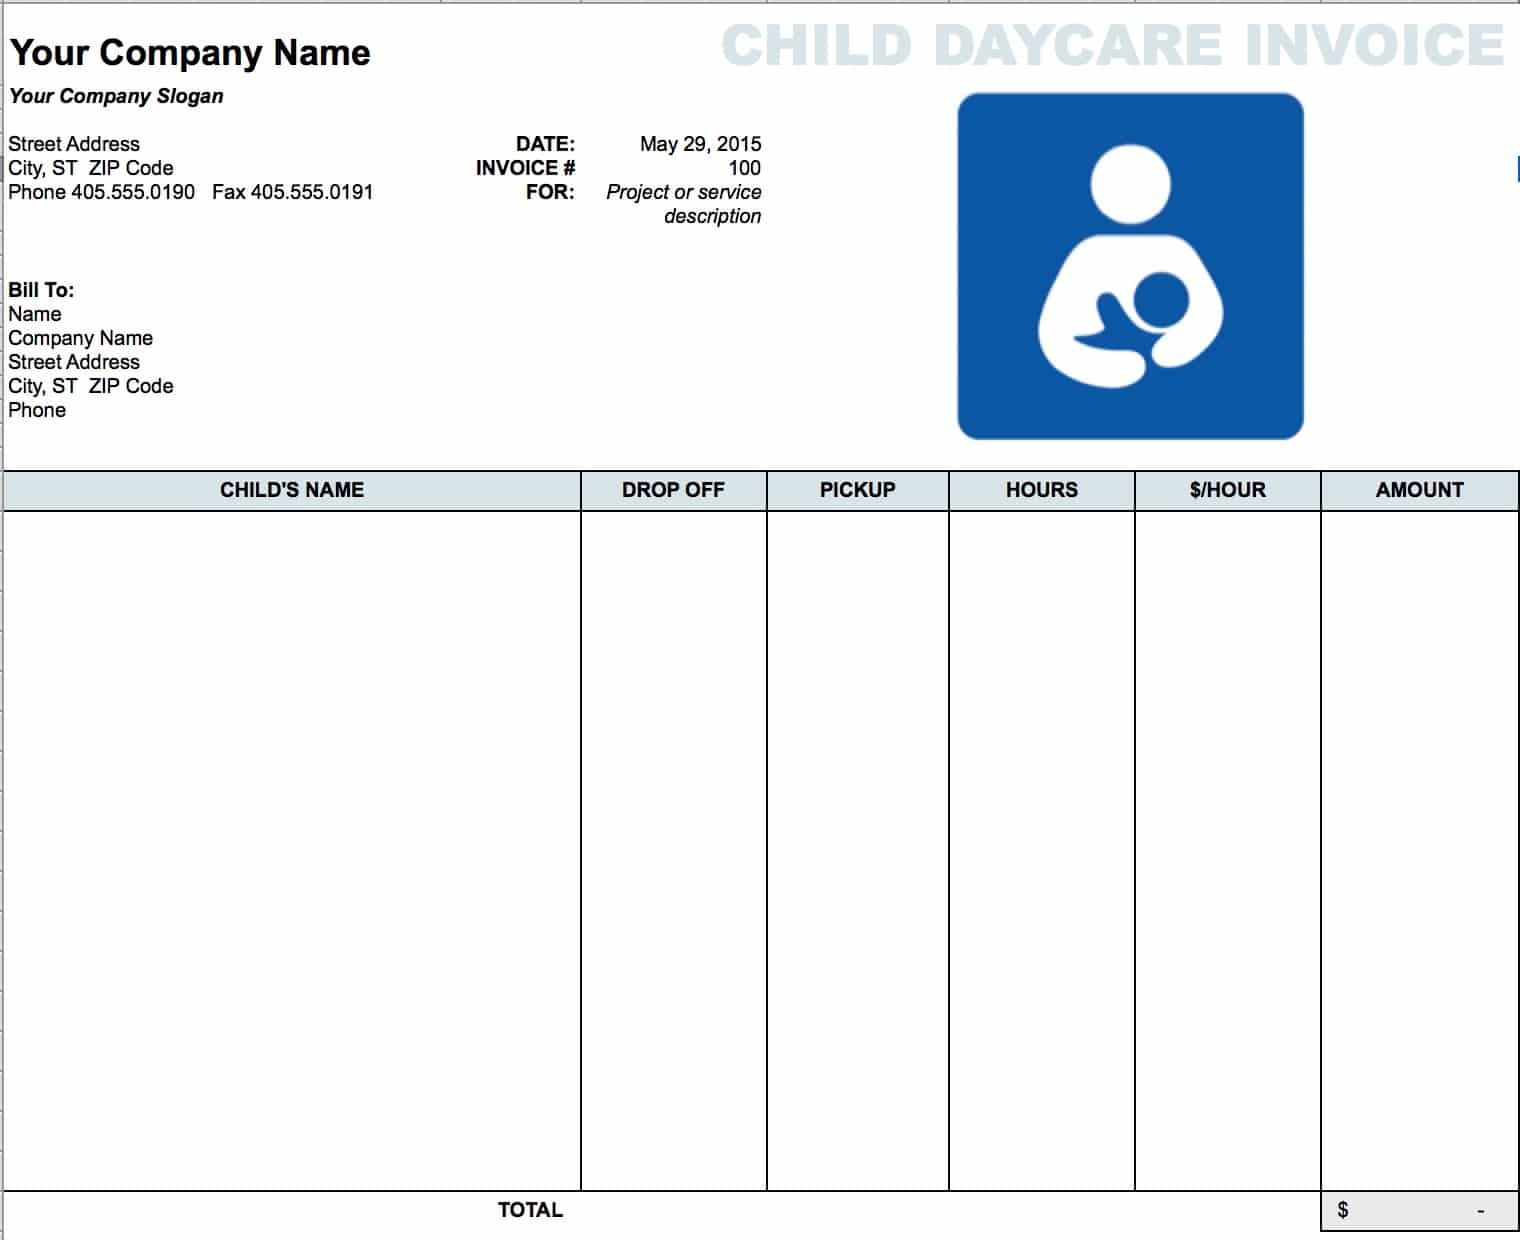 Free Daycare Child Invoice Template Excel PDF Word Doc - Blank invoice template for microsoft word